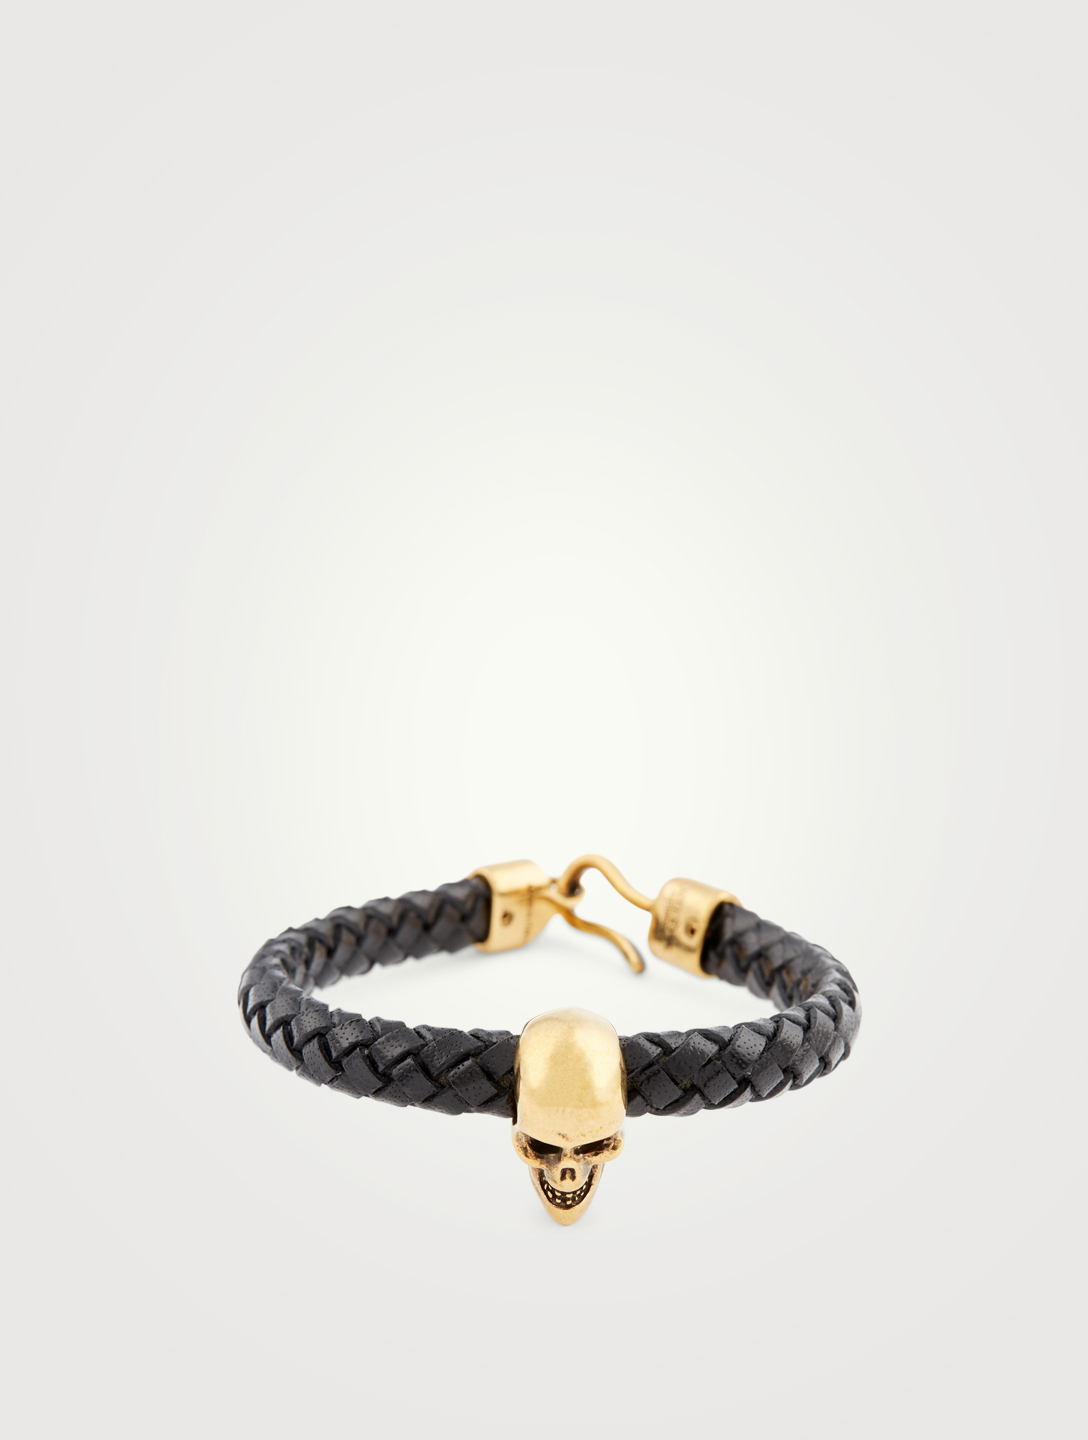 ALEXANDER MCQUEEN Braided Leather Skull Bracelet Men's Black